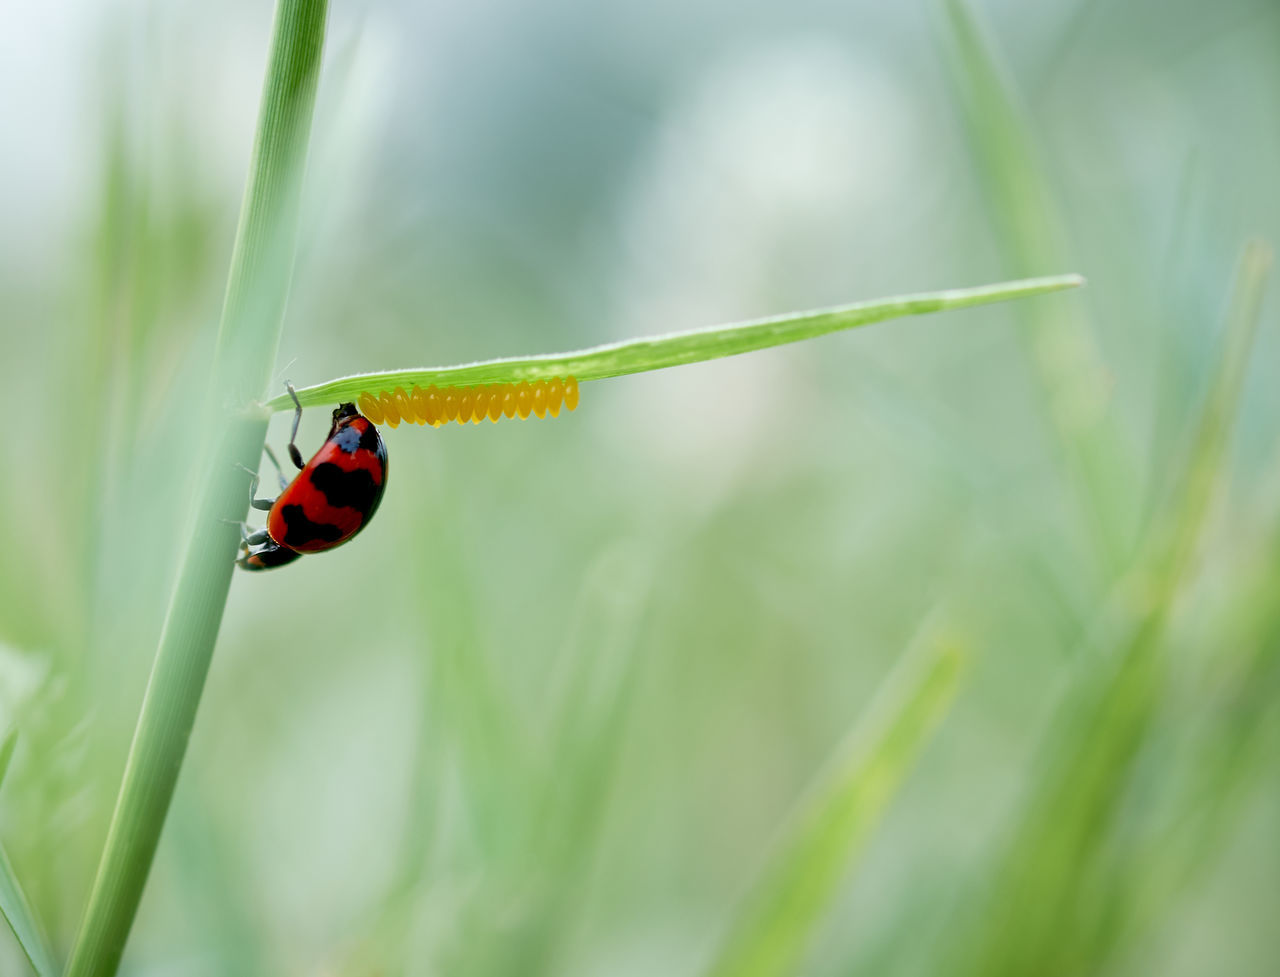 Animal Themes Animals In The Wild Beauty In Nature Close-up Day Eggs Focus On Foreground Insect Ladybug Nature No People One Animal Outdoors